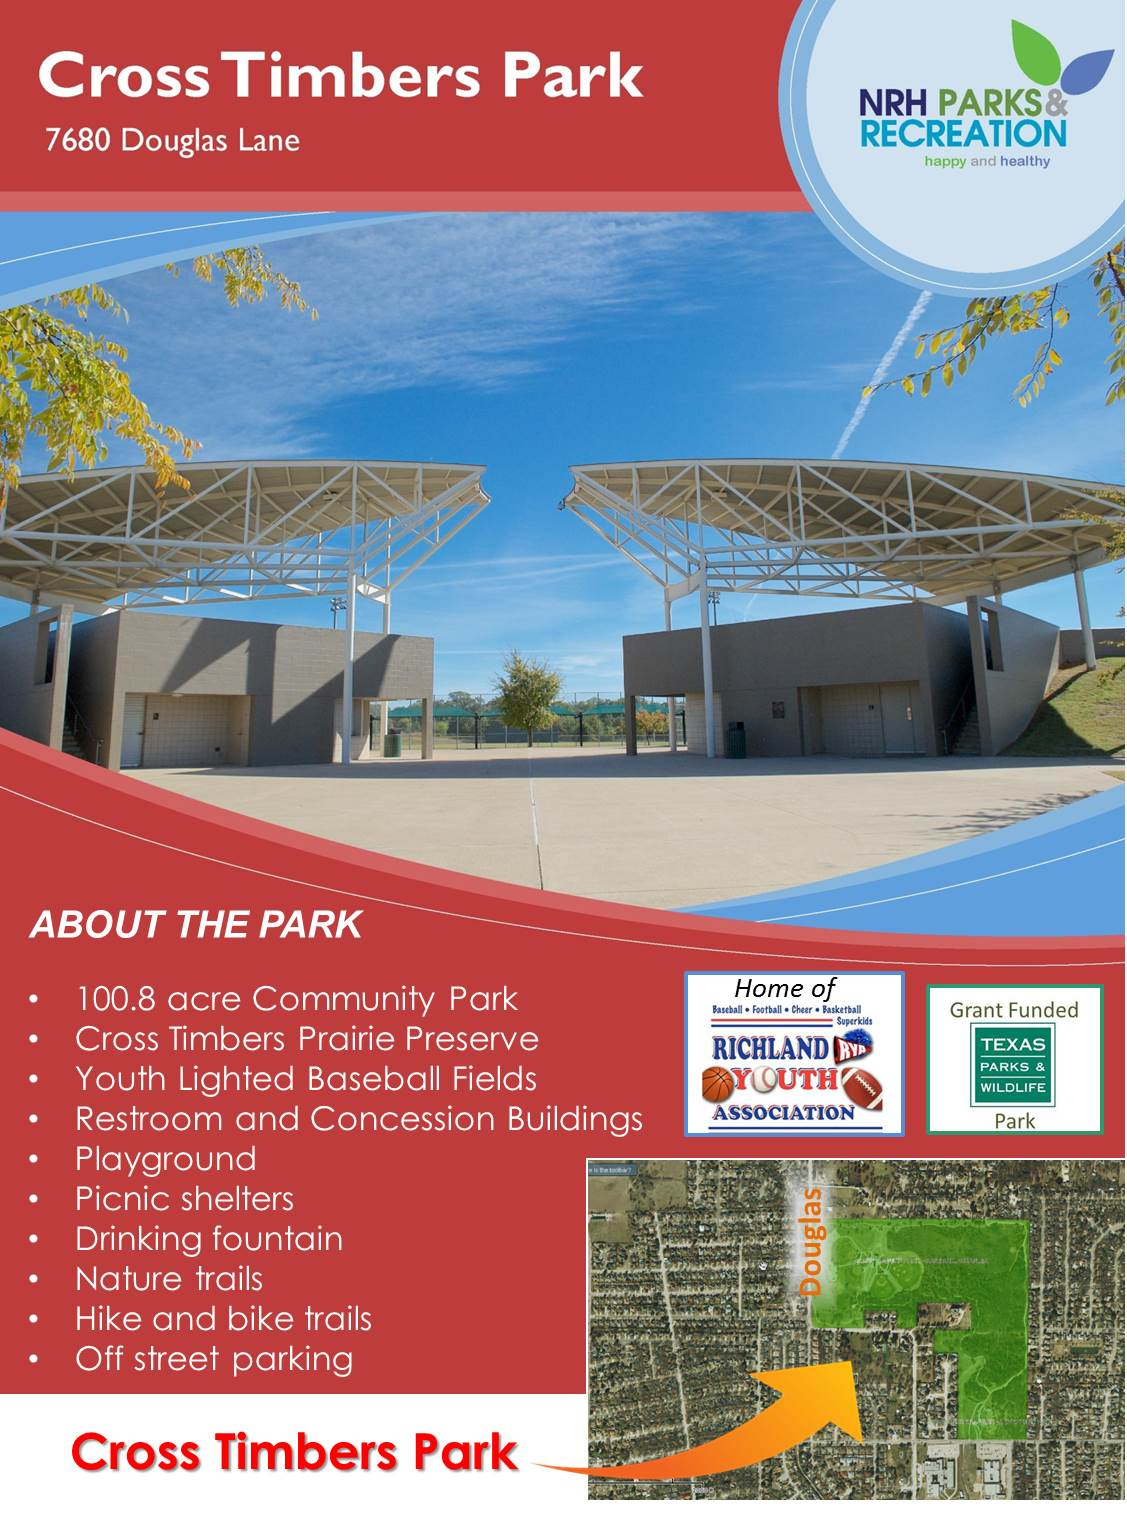 Cross Timbers Park Fact Sheet.jpg